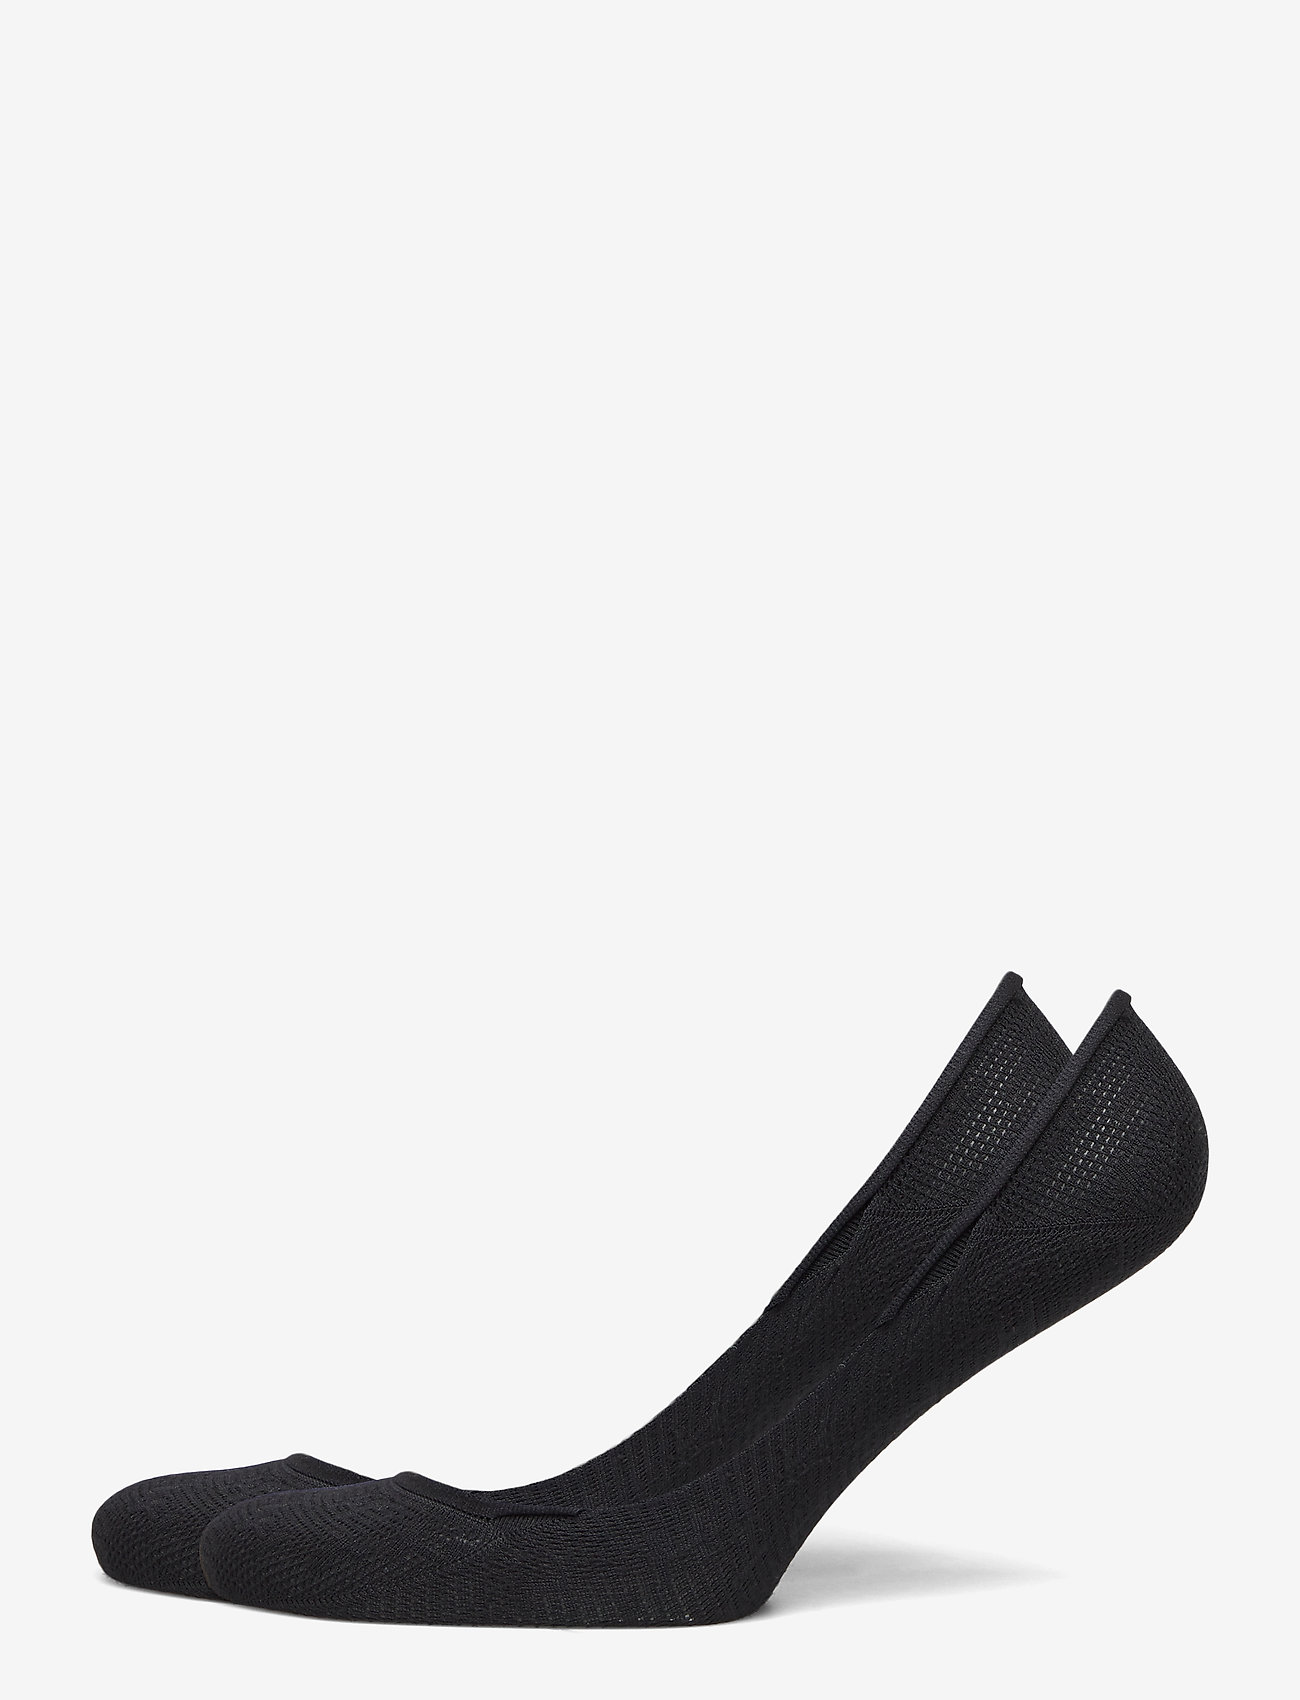 Tommy Hilfiger - TH WOMEN FOOTIE 2P TH BURN OUT - footies - black - 0